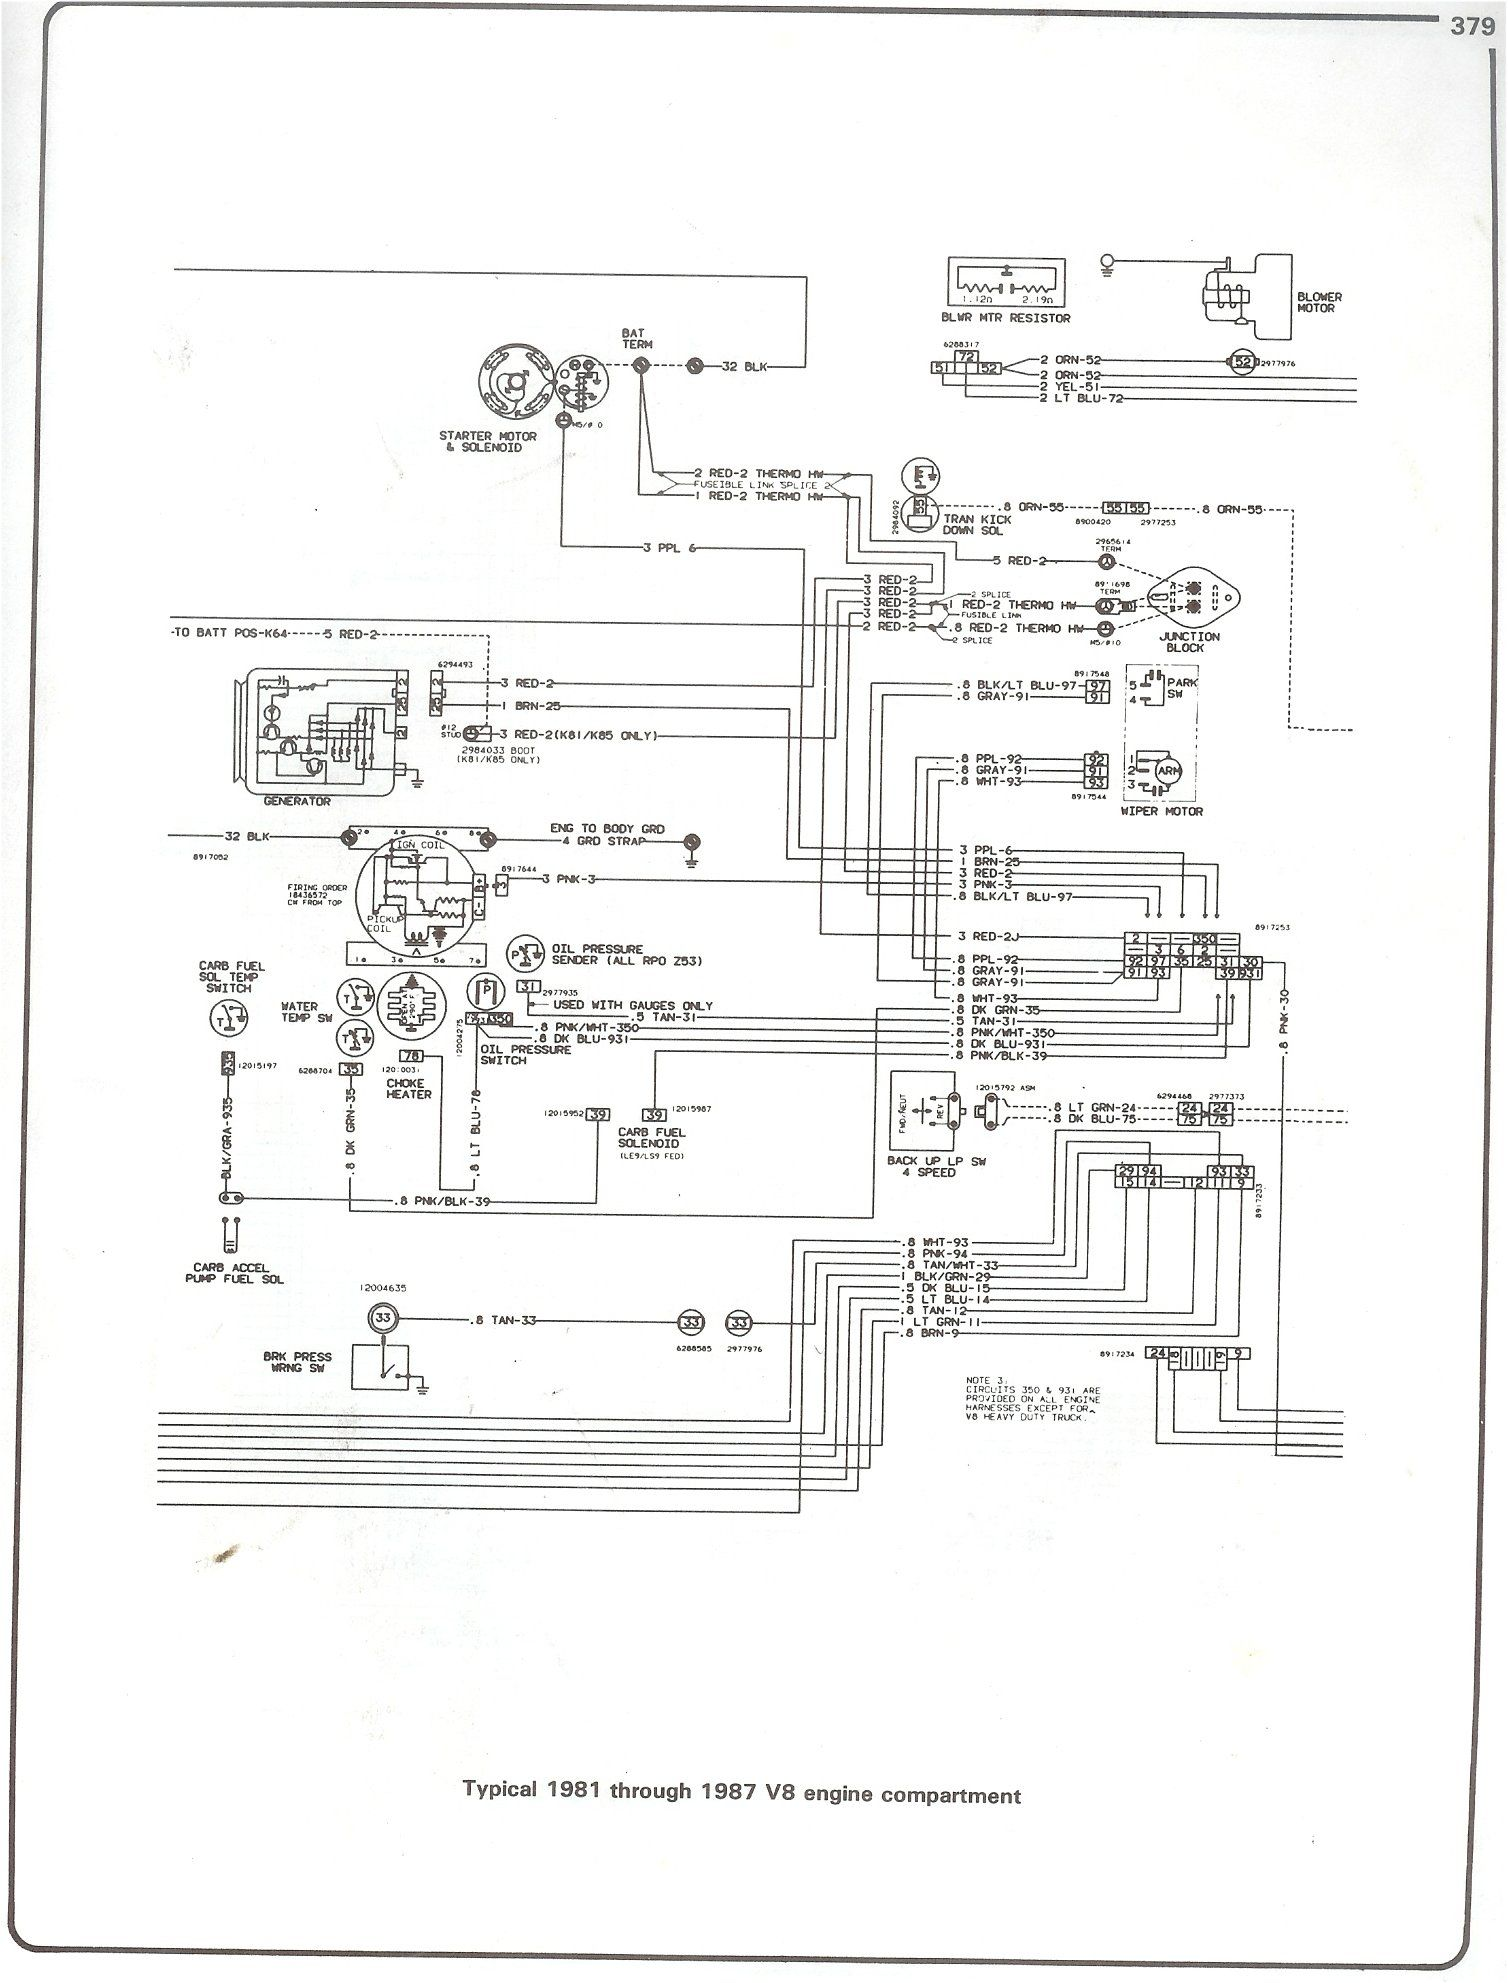 wiring diagram for 85 chevy truck 85 chevy truck wiring diagram | http://www.73 ...